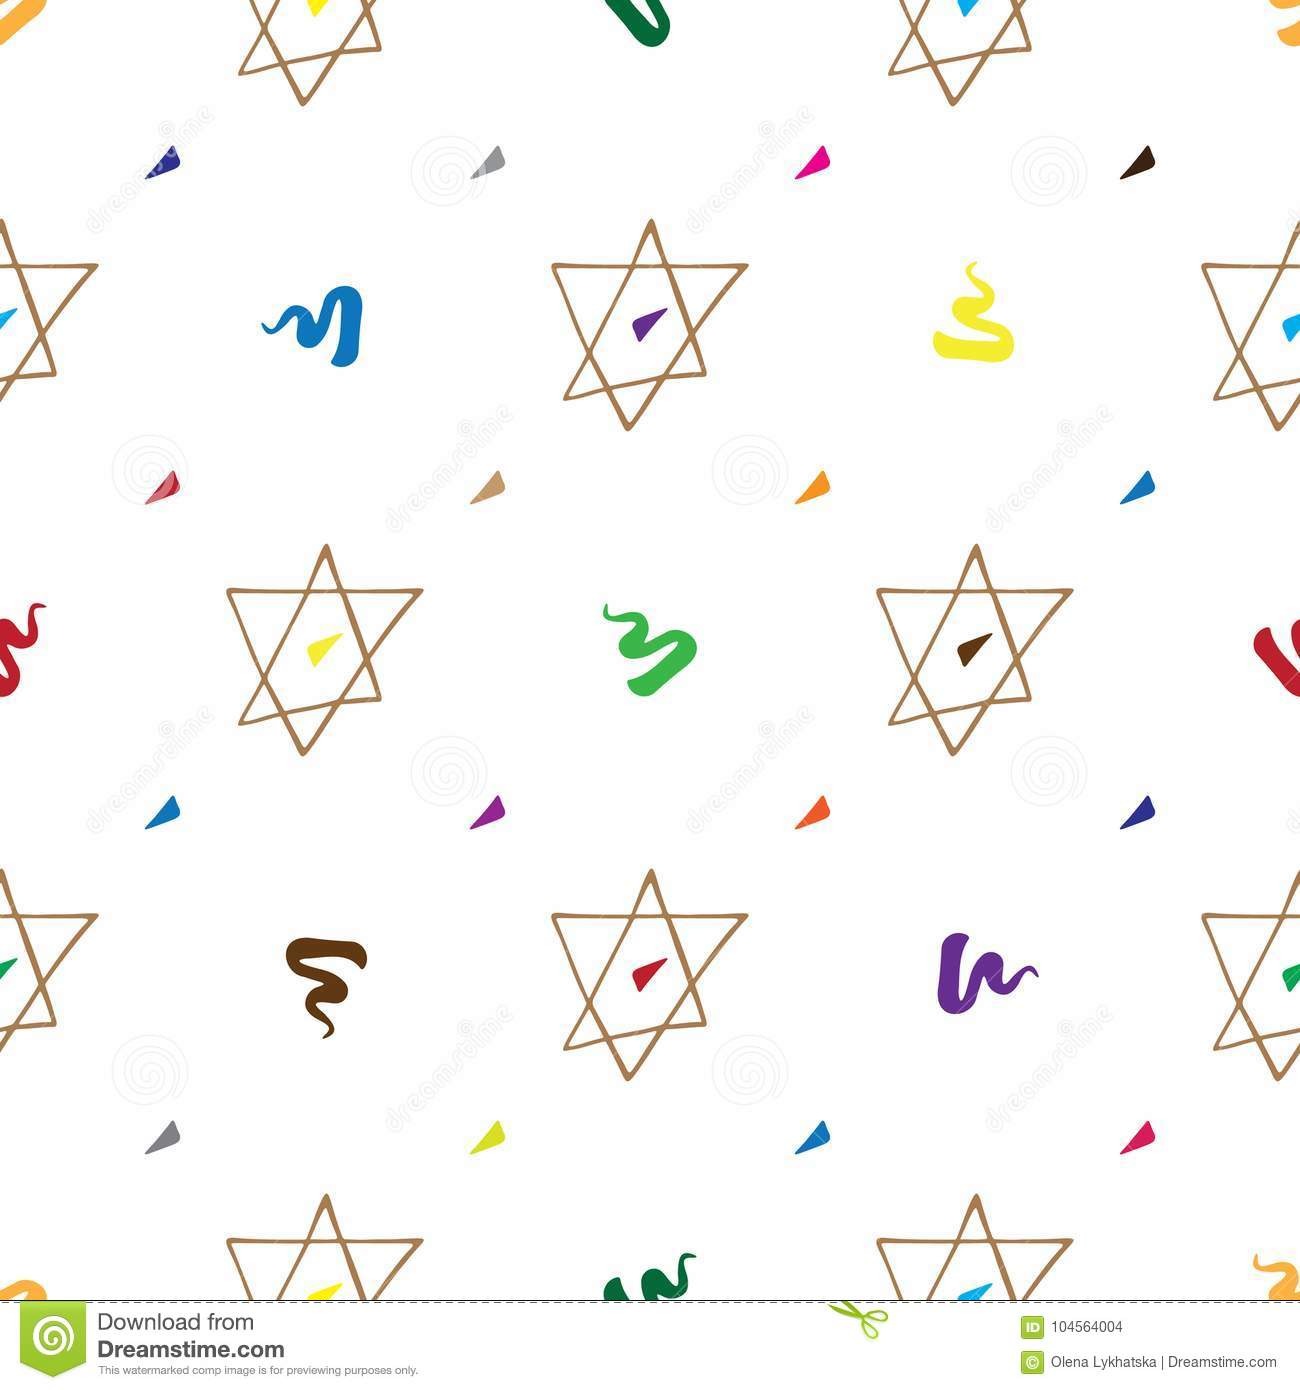 Bar mitzvah pattern hand drawn stock vector illustration 104564004 bar mitzvah pattern hand drawn biocorpaavc Gallery